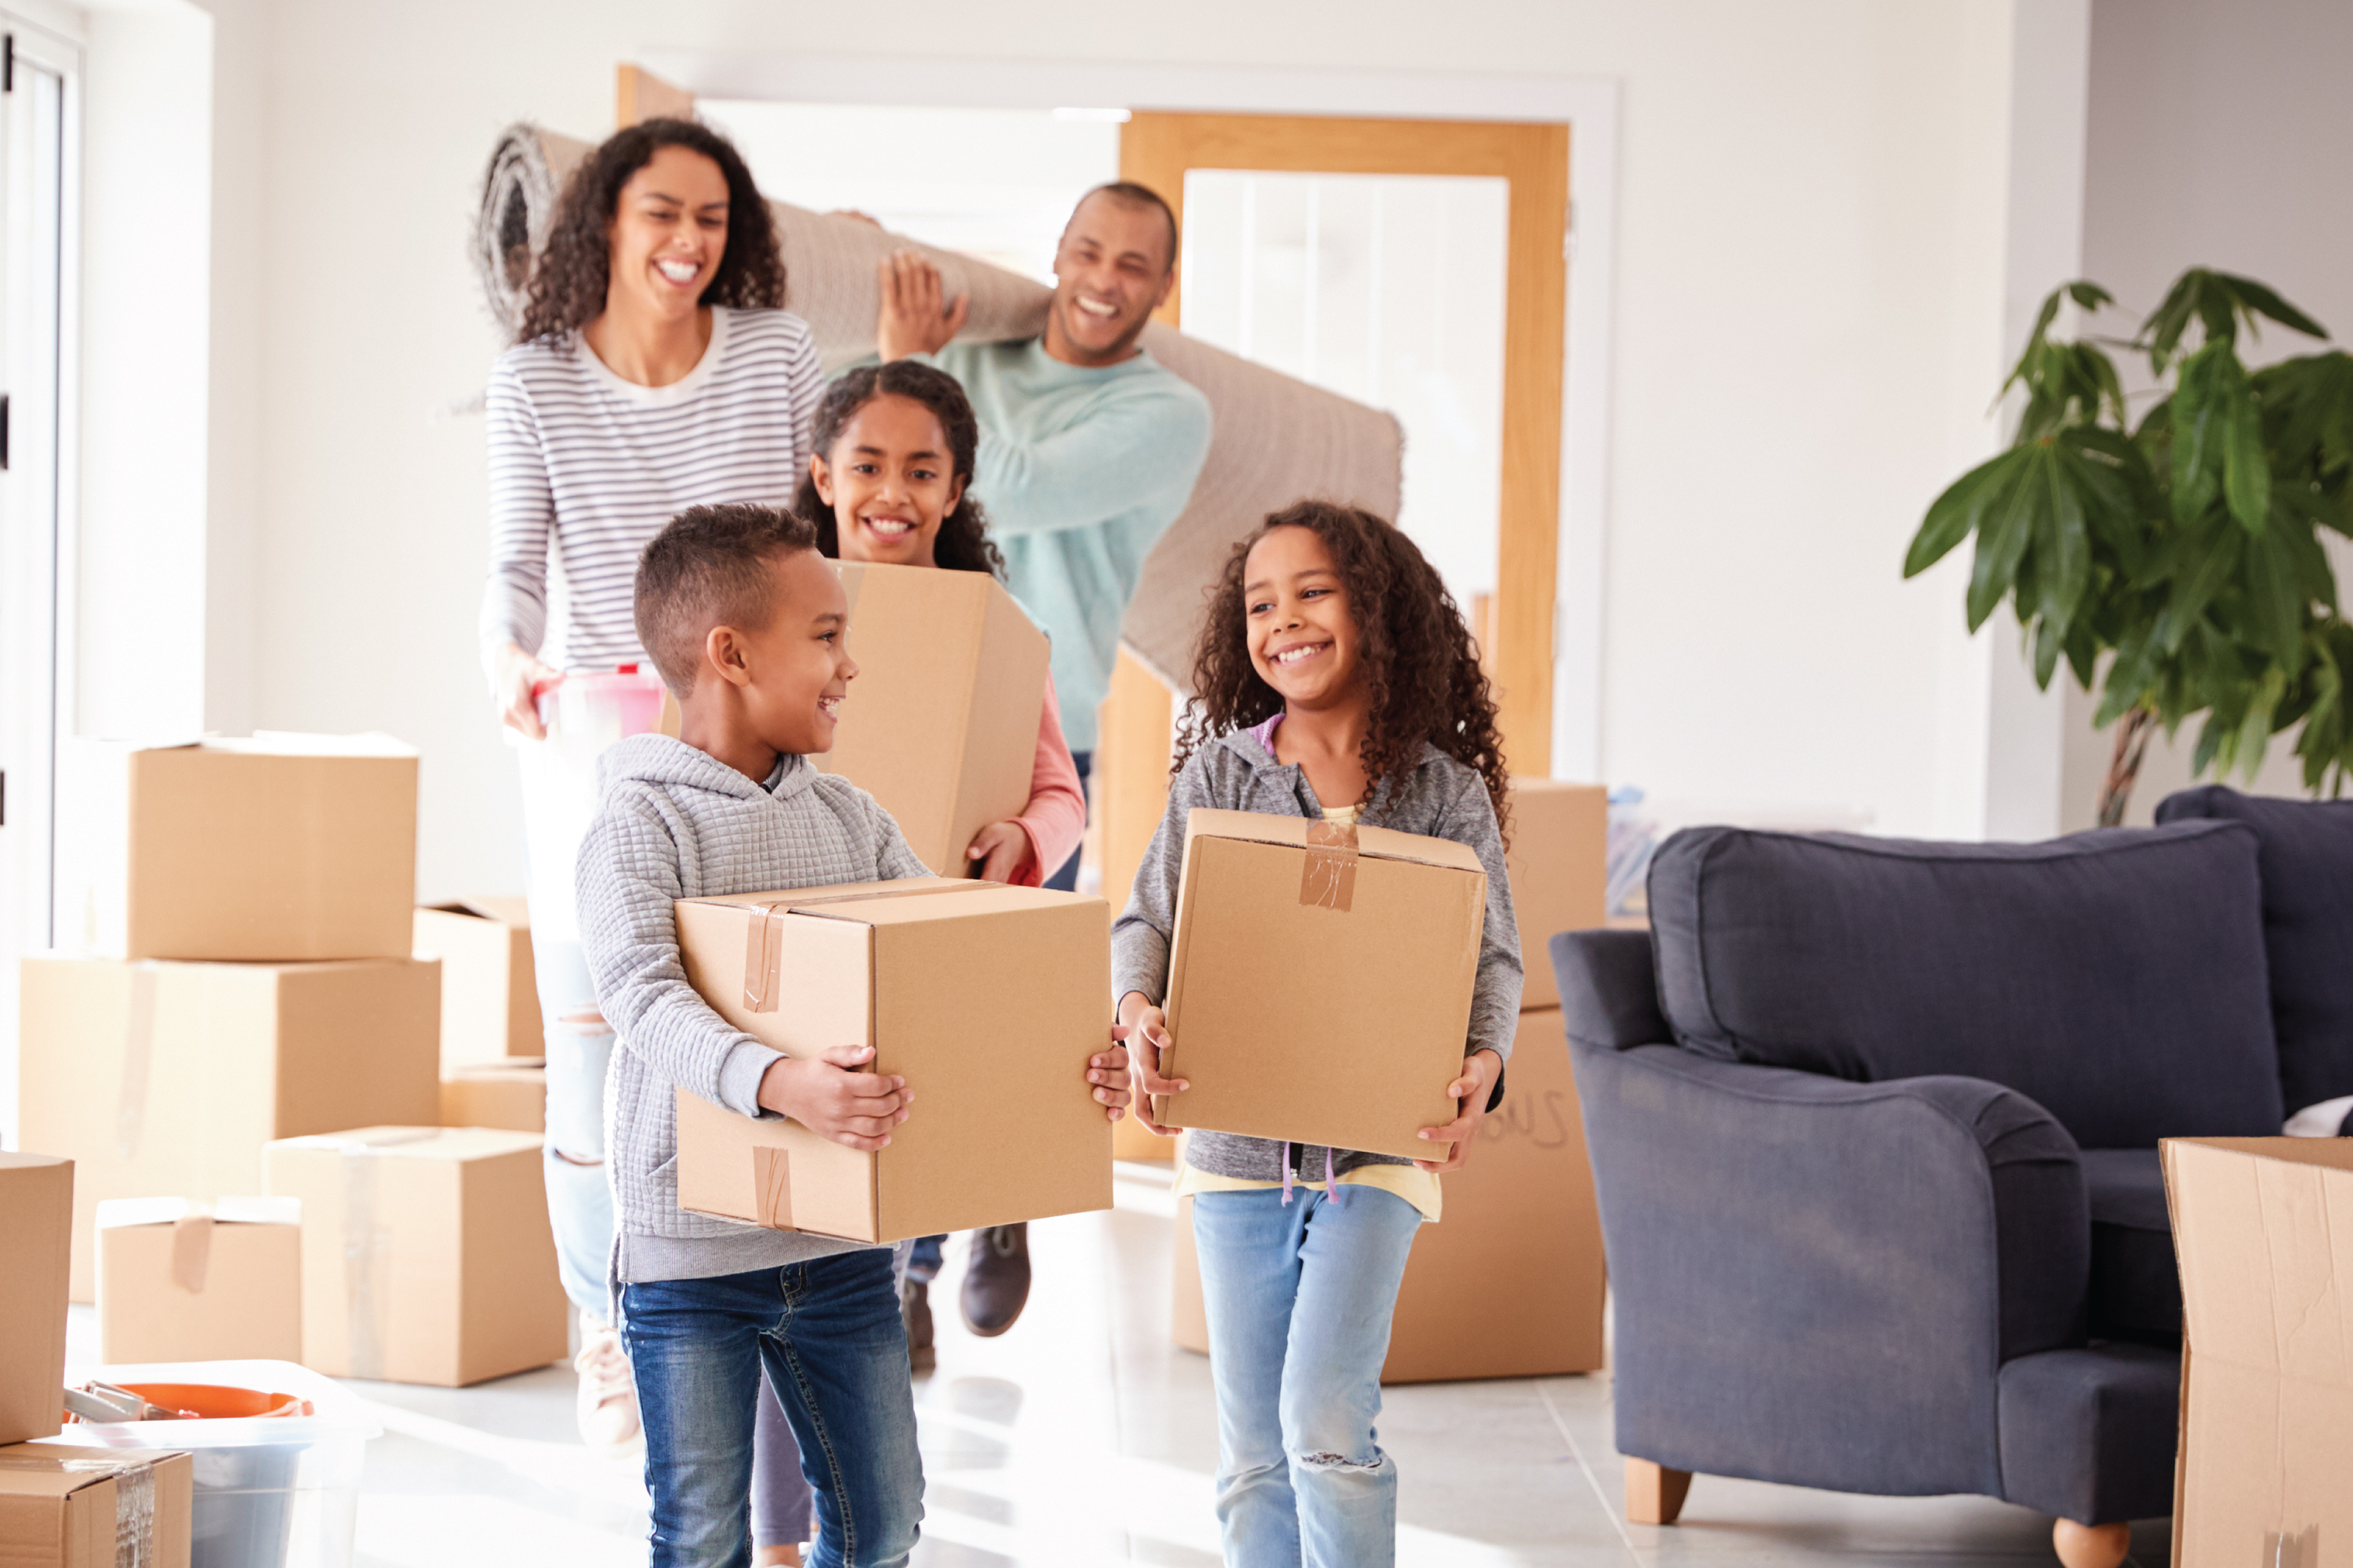 a family bringing moving boxes into their new home